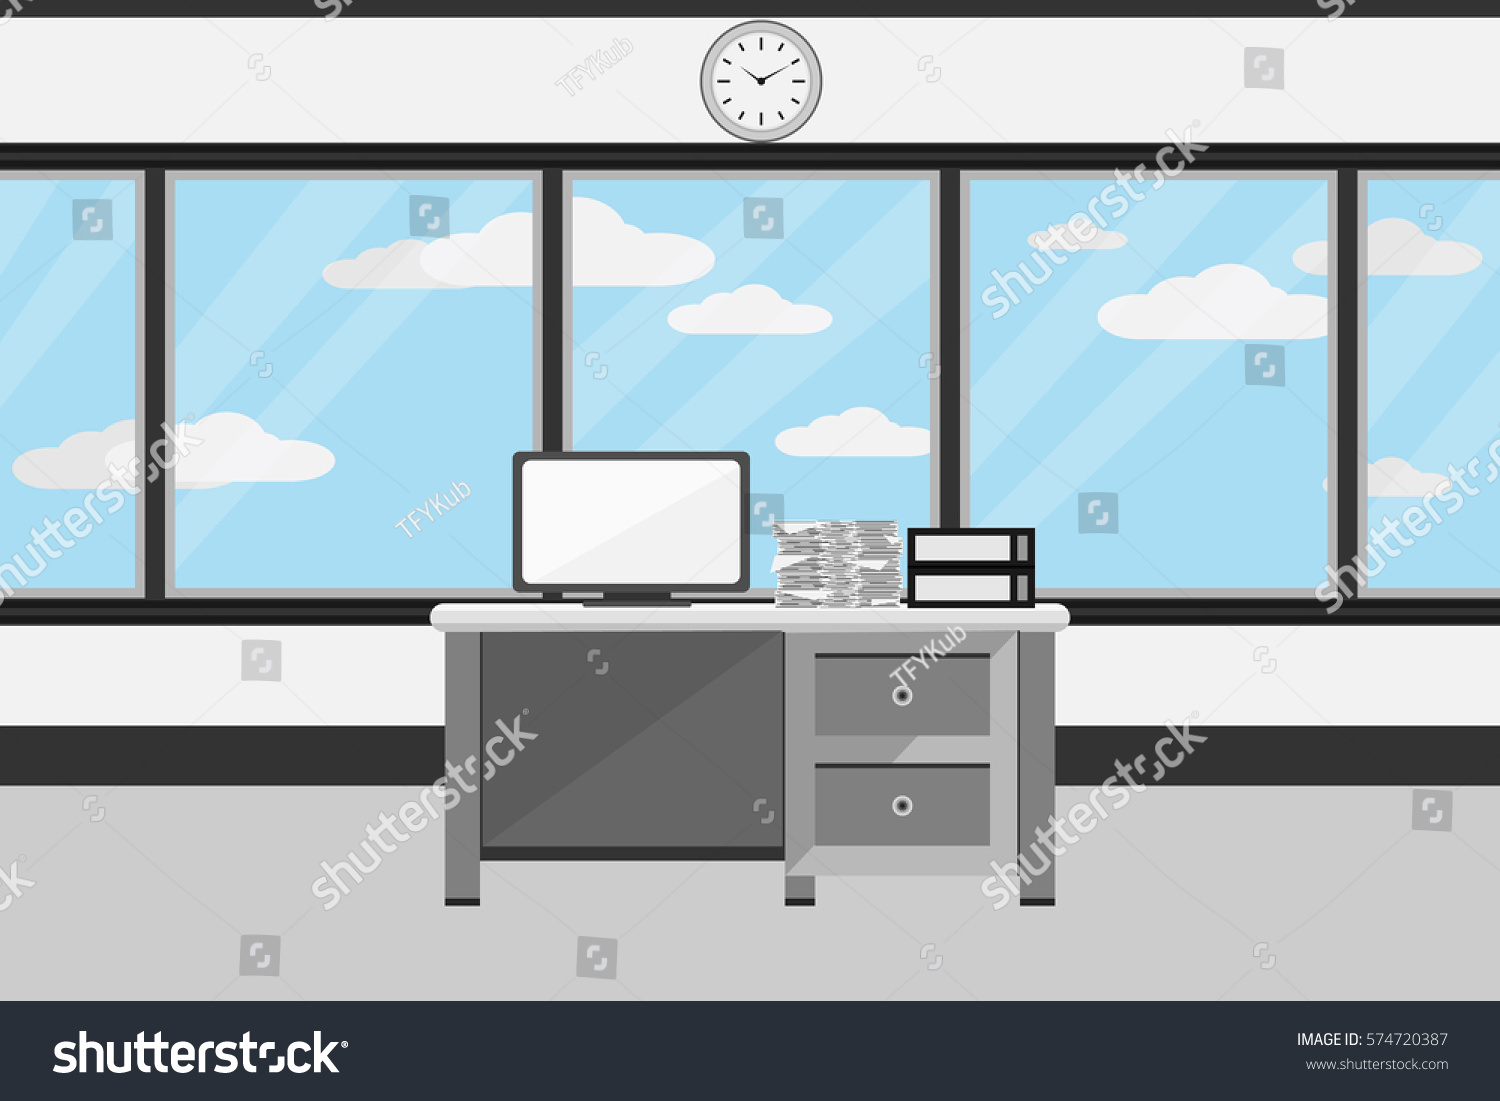 Interior office room design vector illustration stock for Interior design images vector